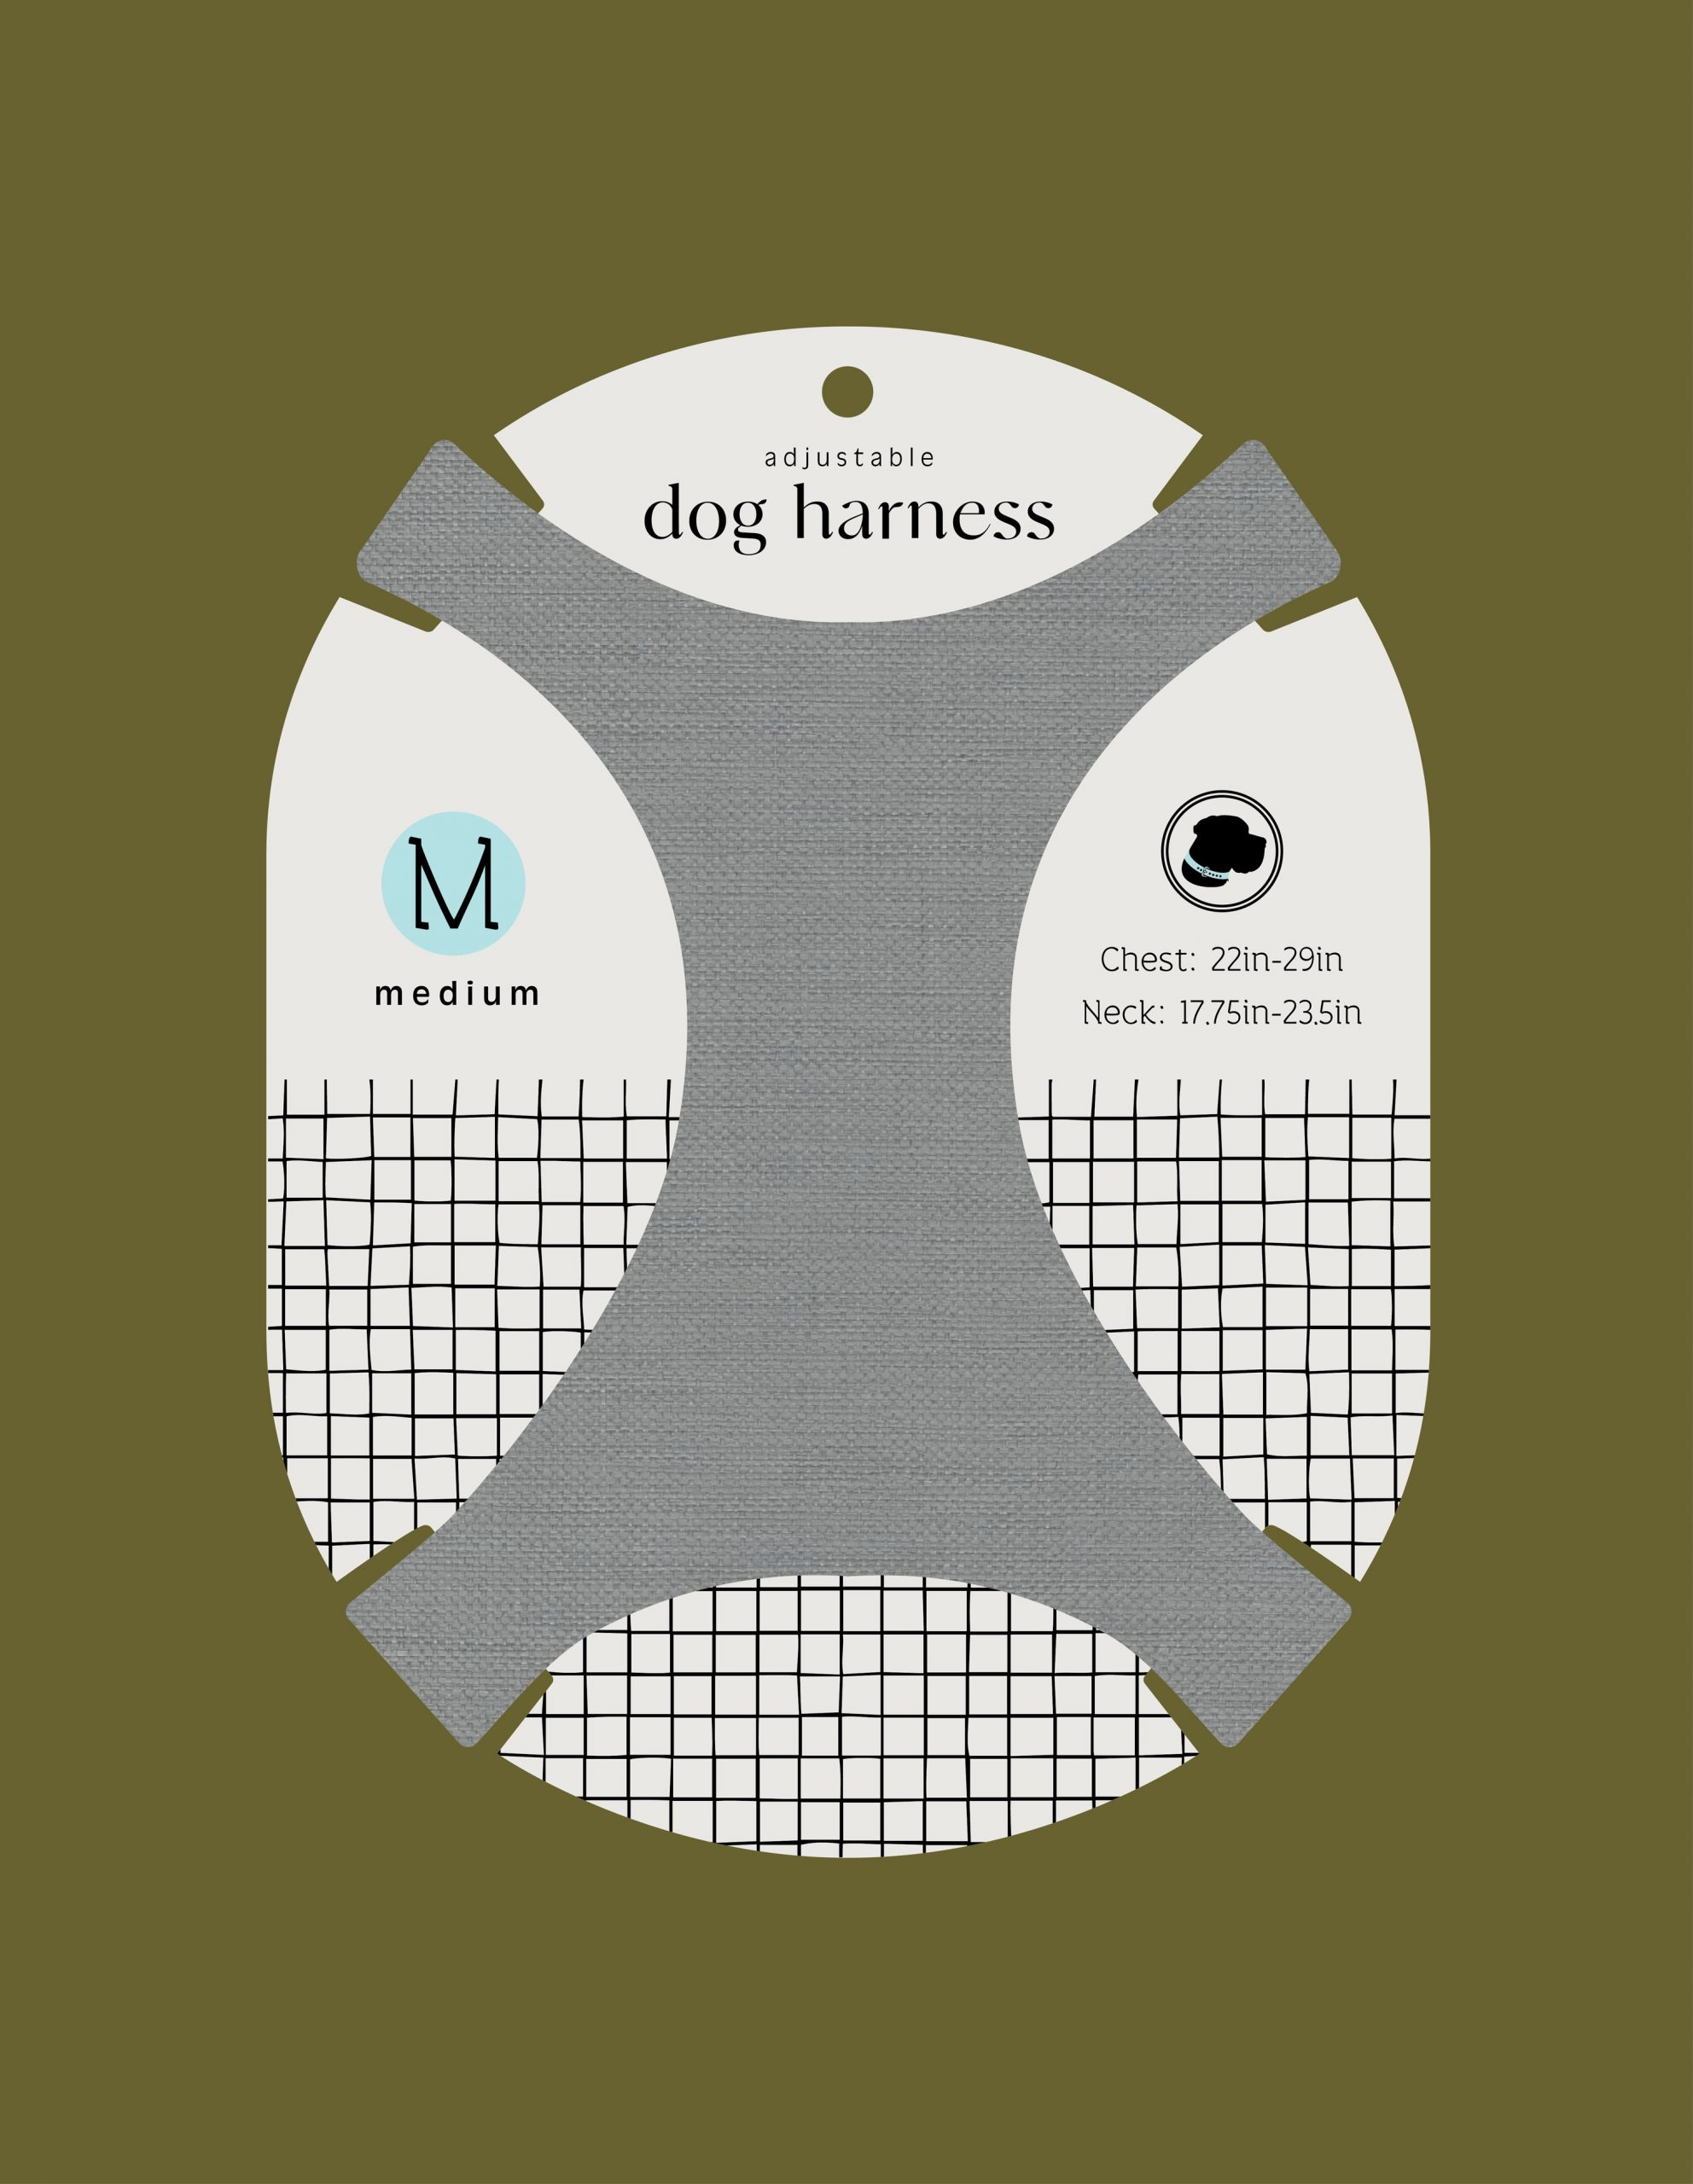 Adjustable dog harness packaging